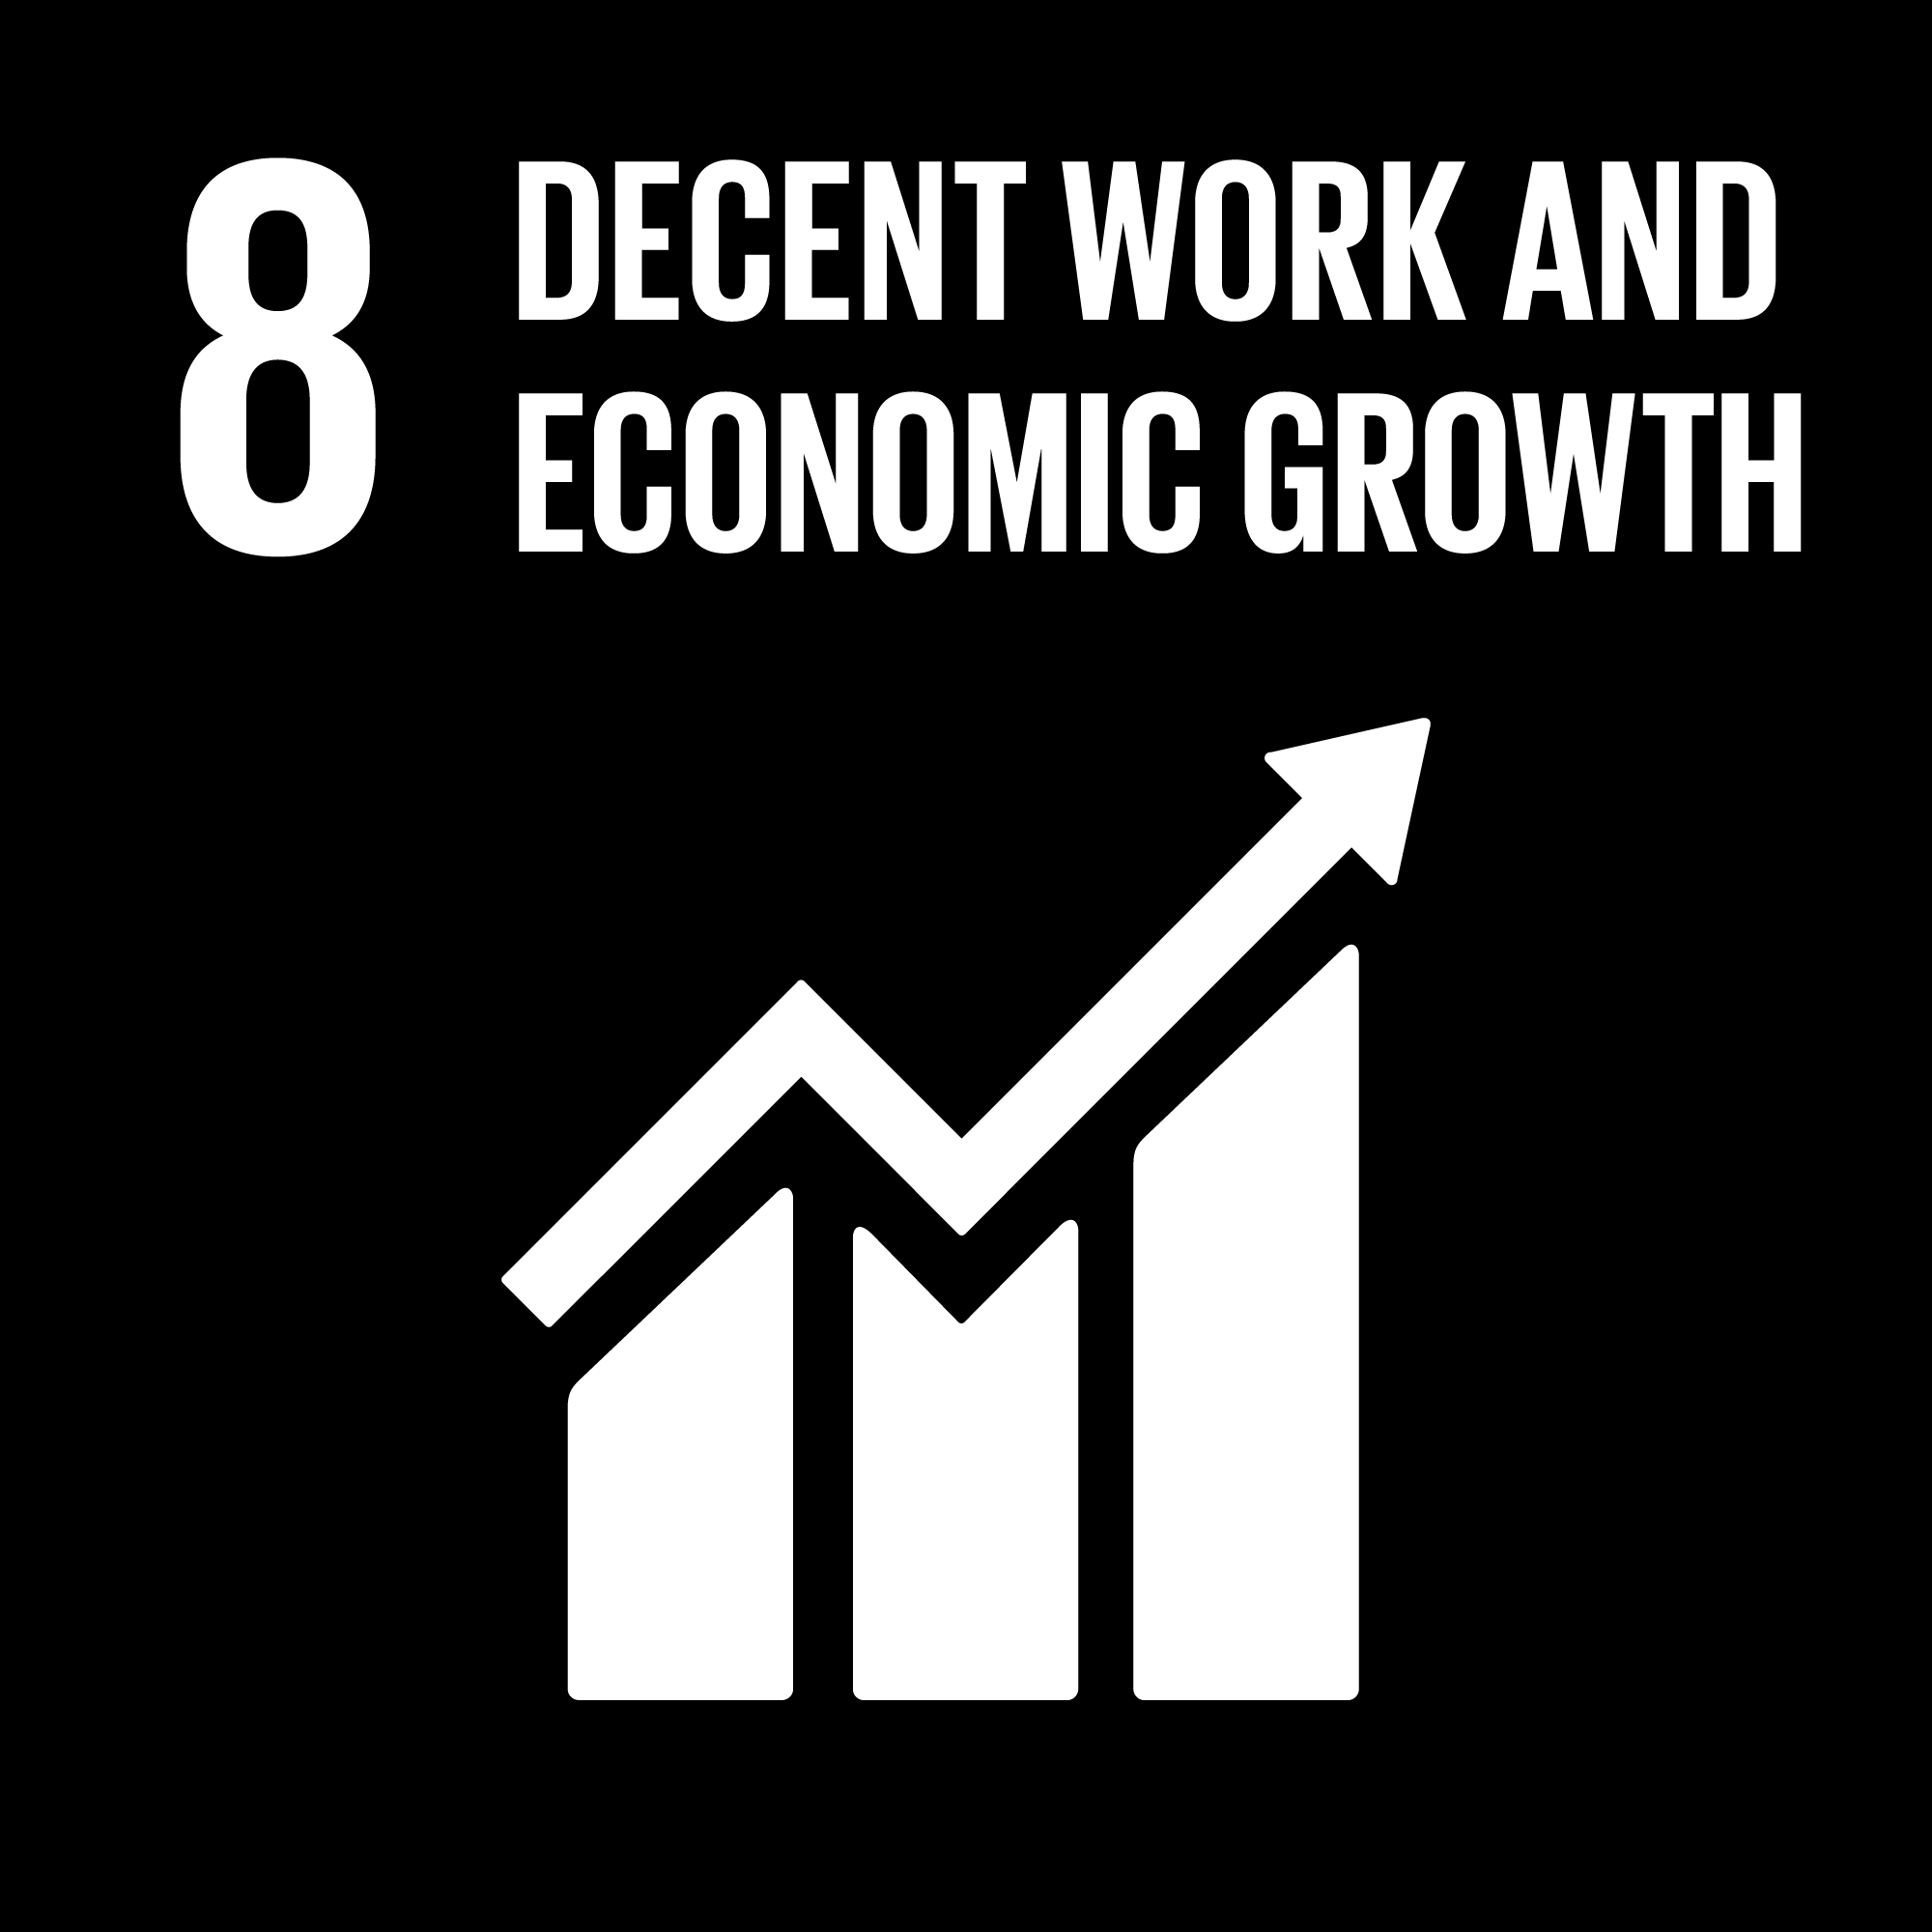 Sustainable Development Goals - 8 - Decent Work and Economic Growth